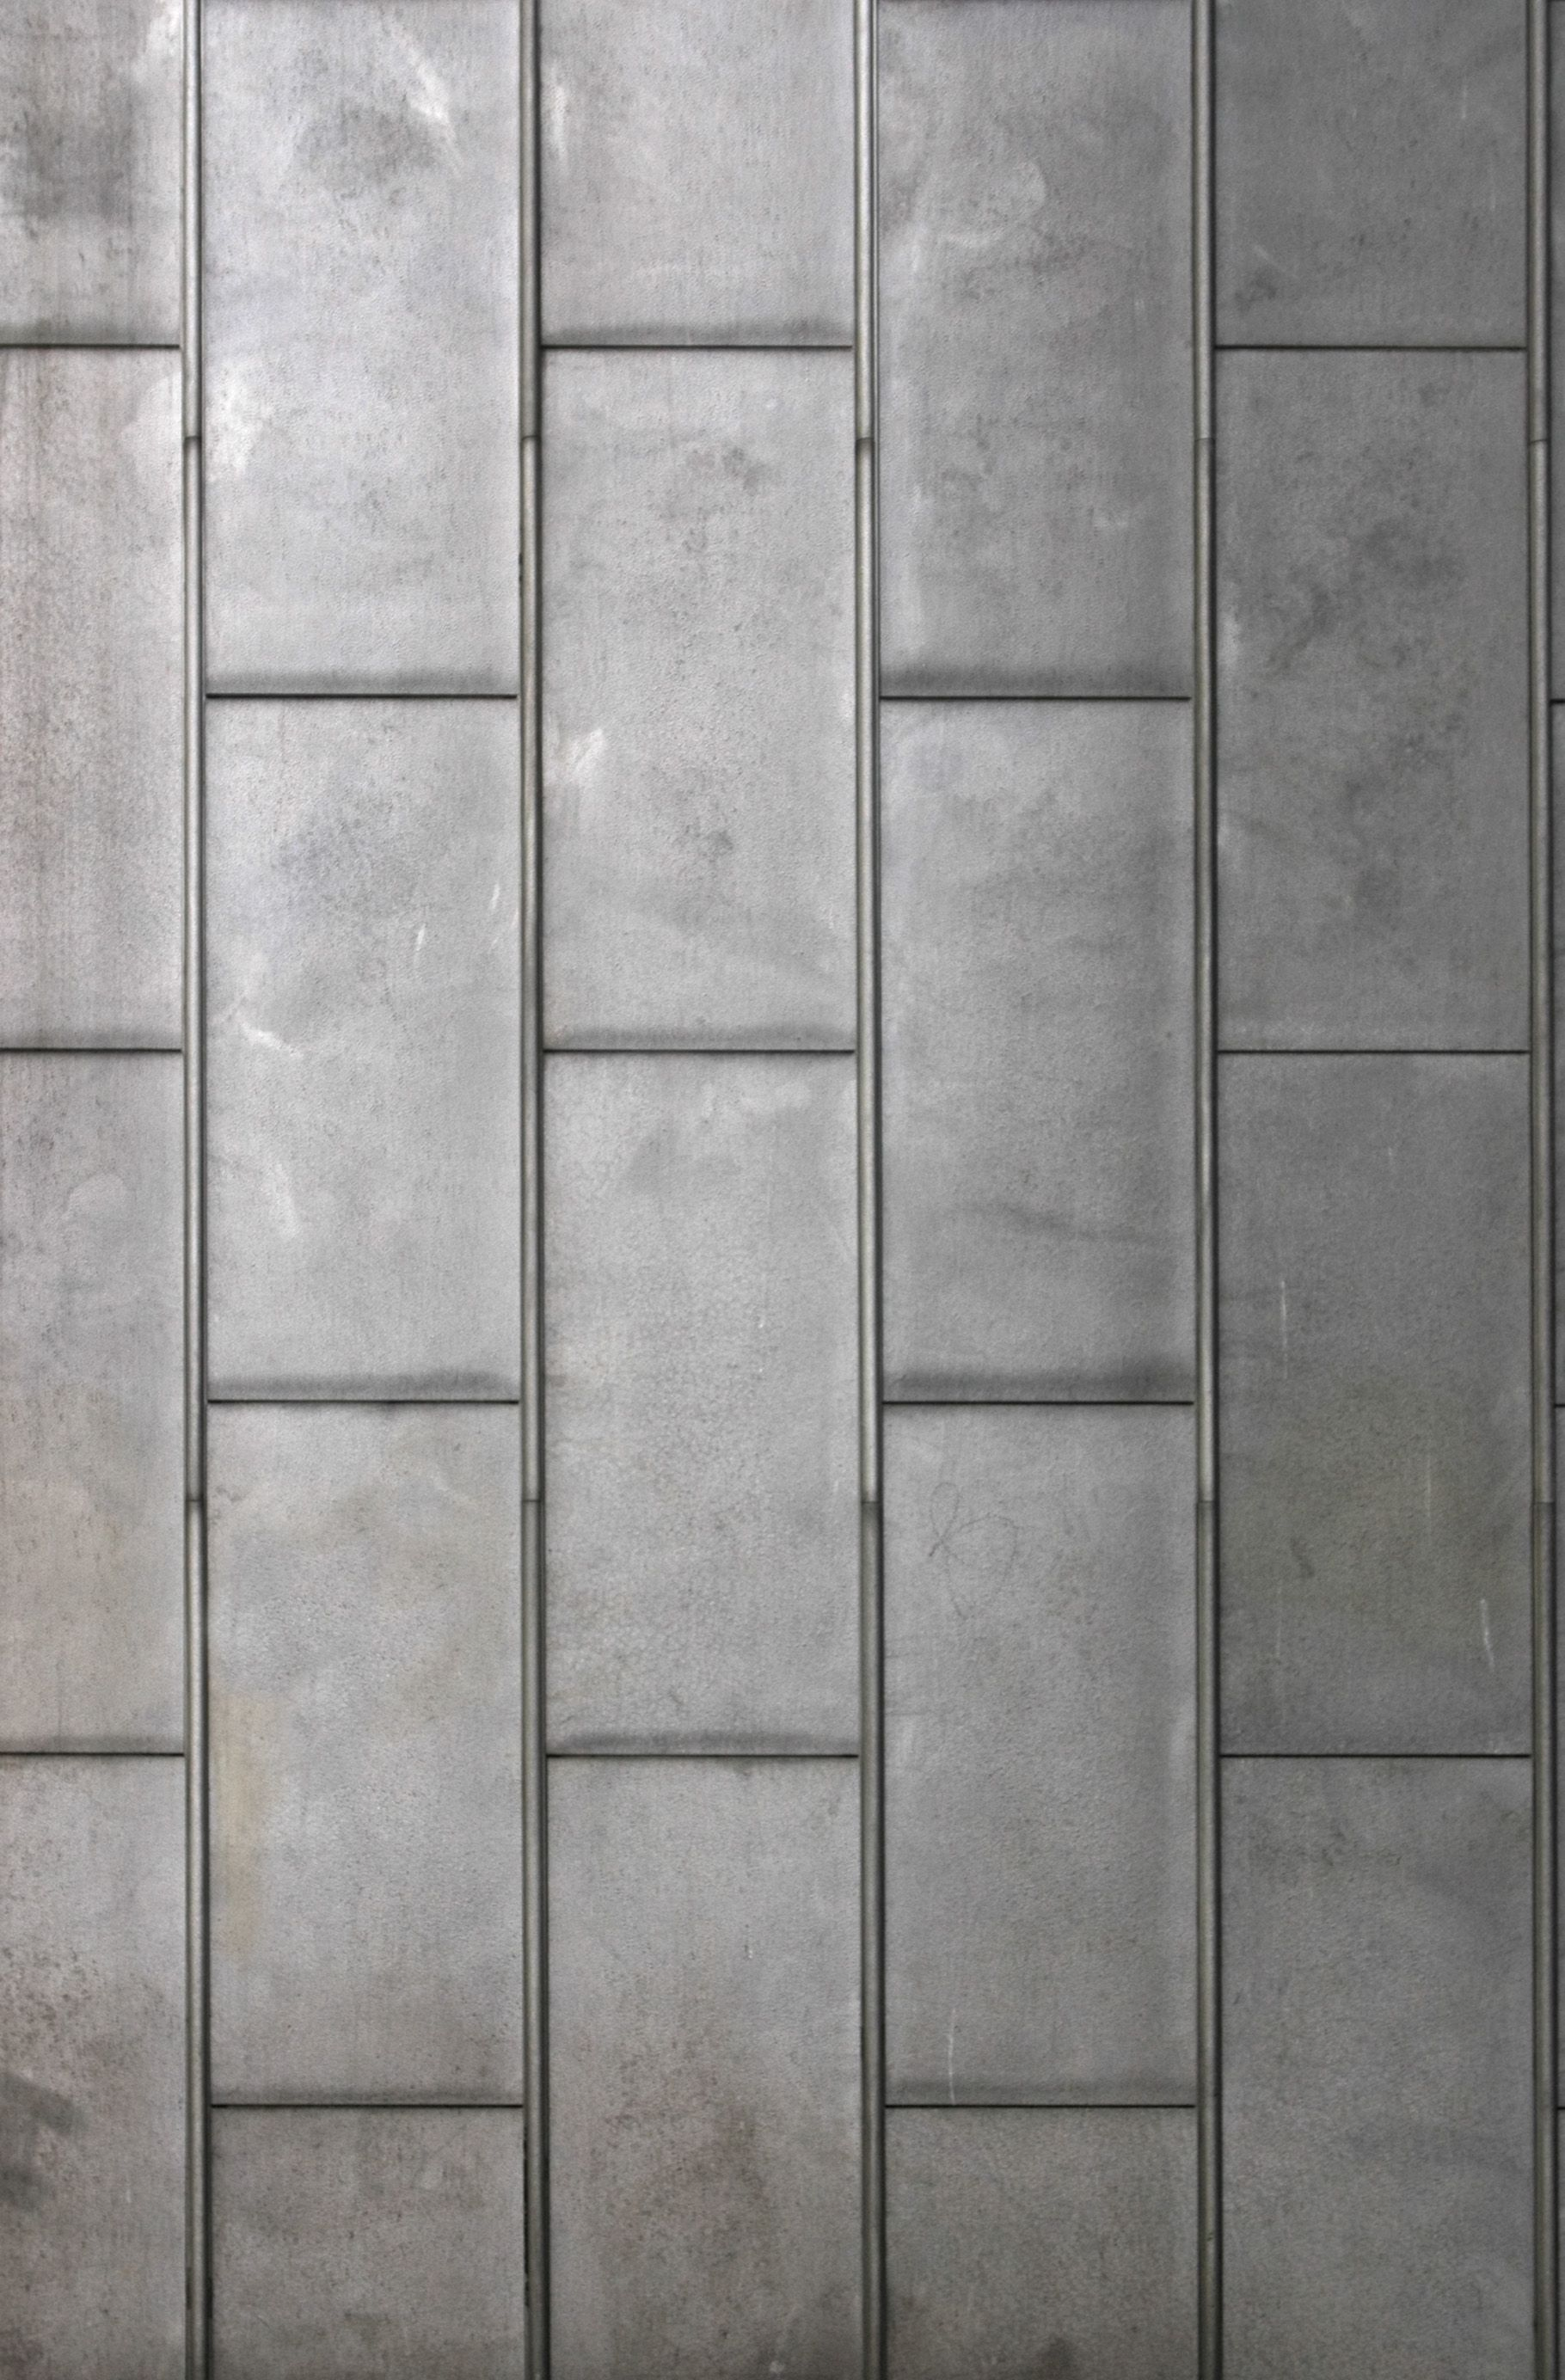 Metallic Wall Paneling : Textured zinc facade acid google search boulder